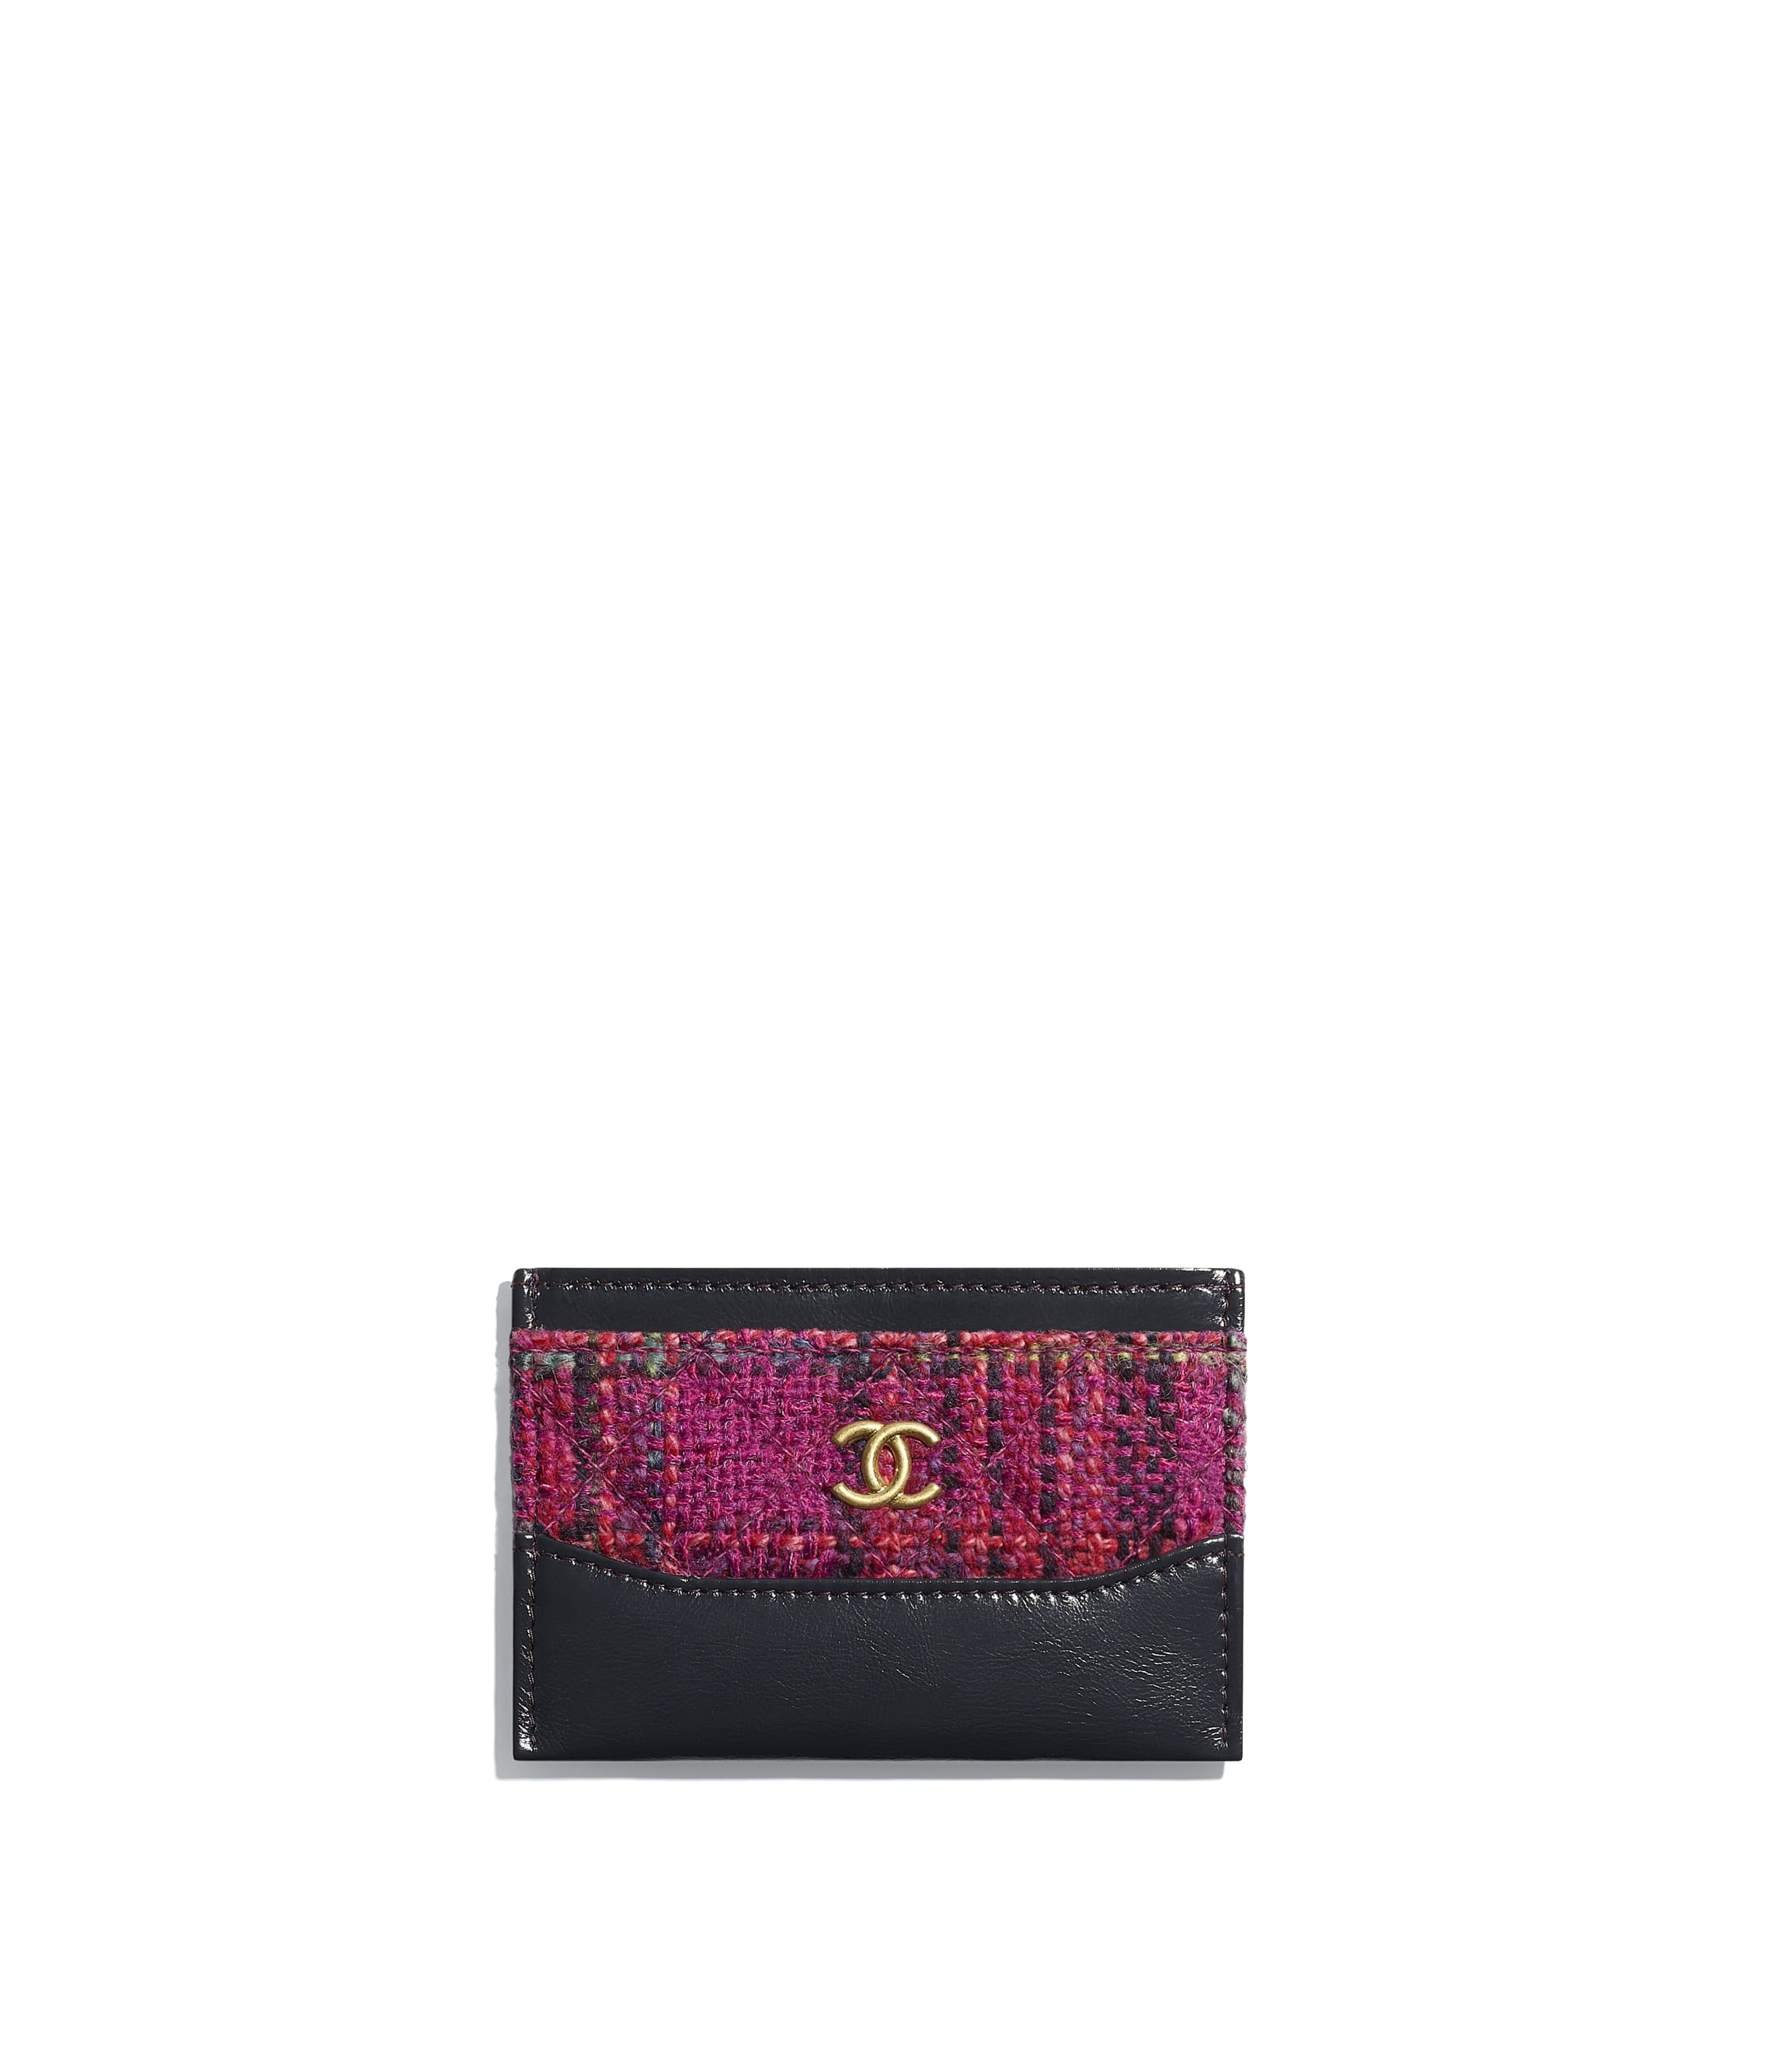 Card holders small leather goods chanel card holder reheart Choice Image